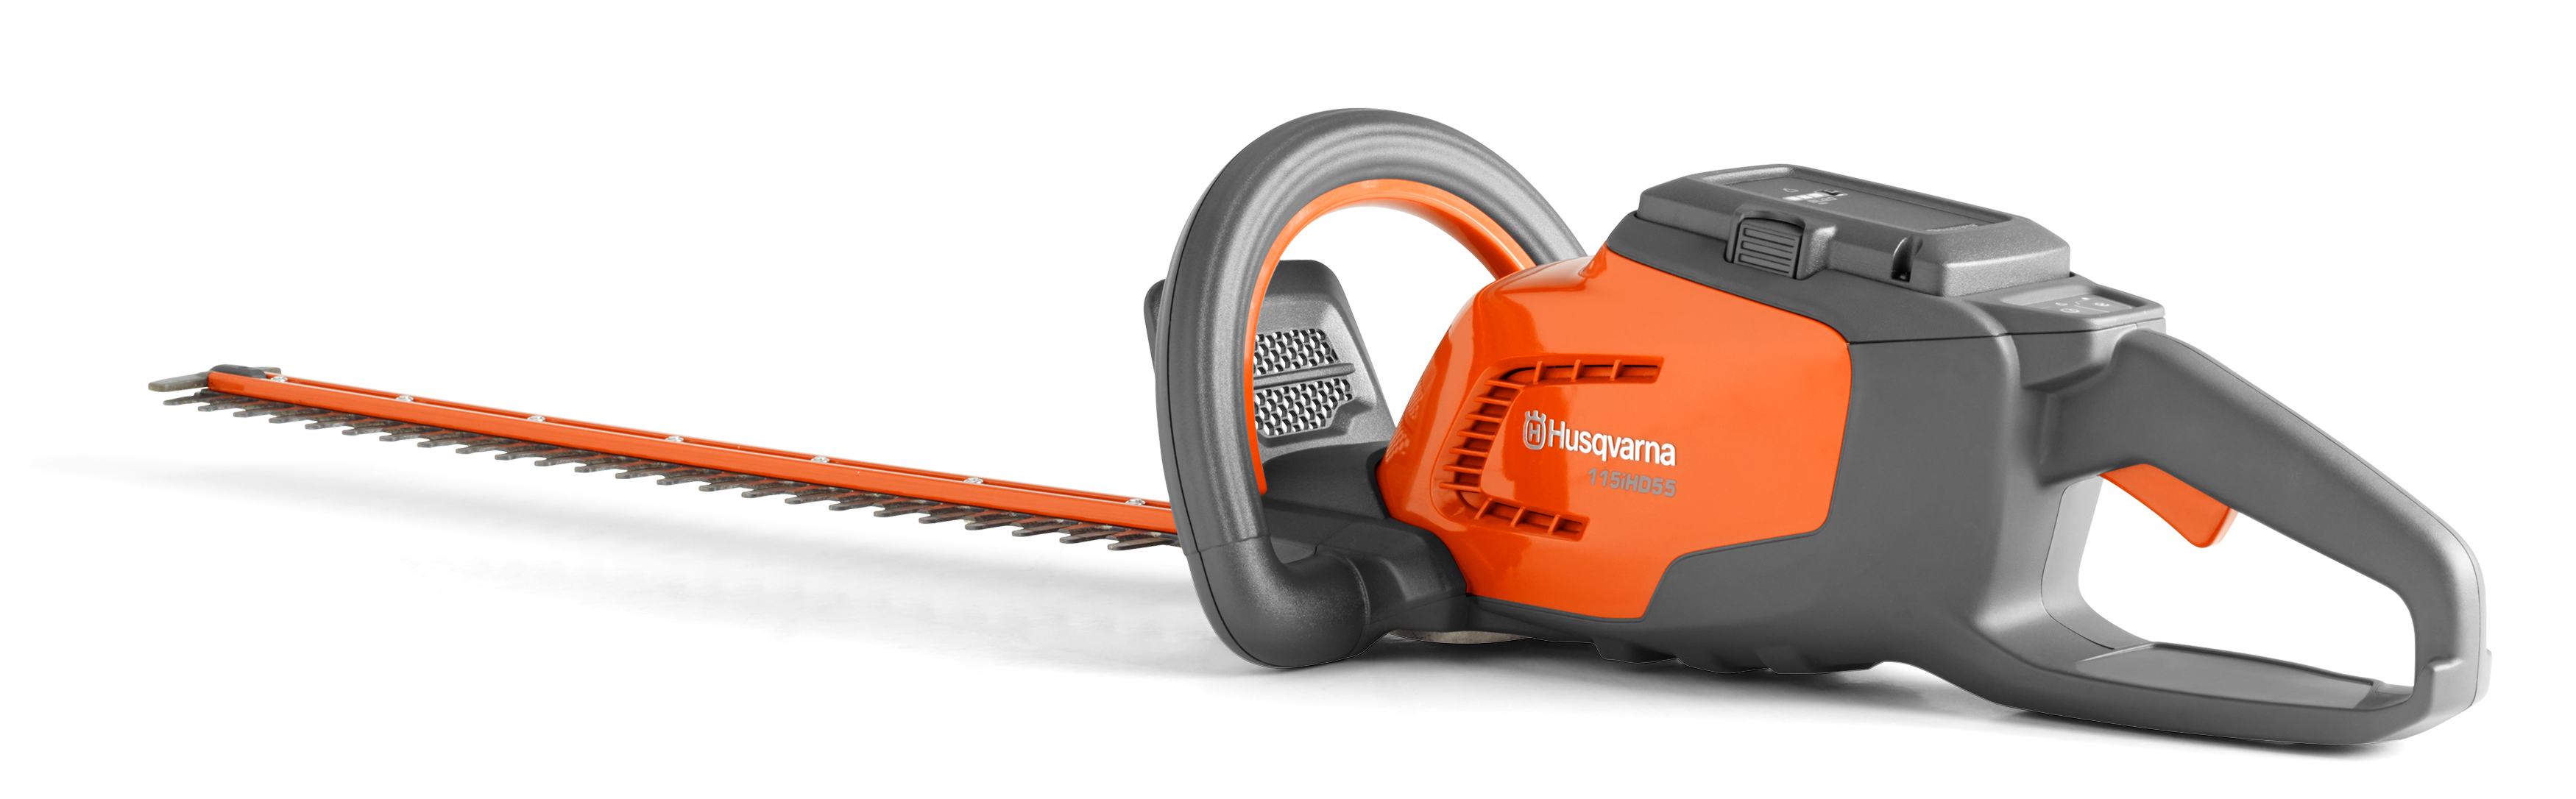 Image for 115iHD55 Battery Hedge Trimmer                                                                                                   from HusqvarnaB2C